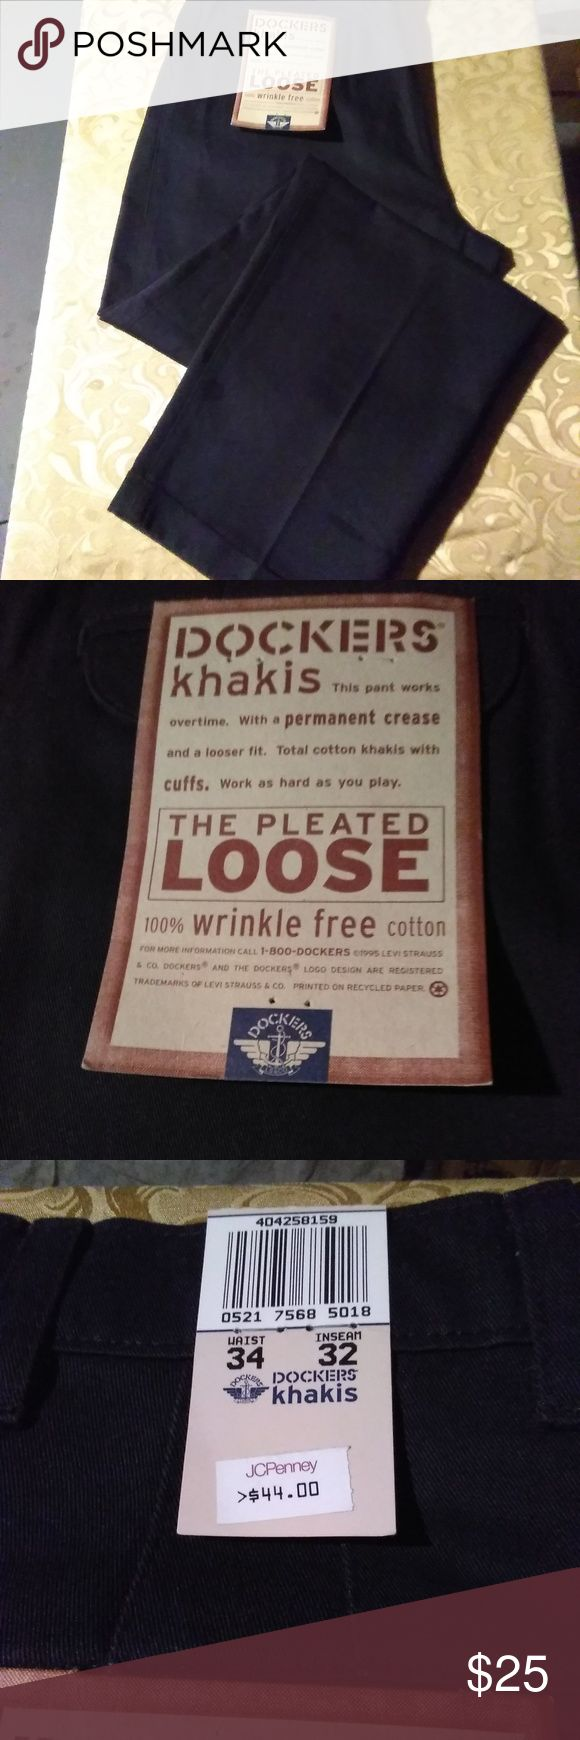 Dockers Men's Khakis (34x32) NWT (Must Go!) A never used Men's pair of khaki pants. There is no damage to this item, they are great for work or a night out. Original tags still attached. It's a Men's (34 x 32). The color is all Black with a solid pattern.  It's made from 100% Cotton.Also they are wrinkle free. Make an offer on this or any item you like. Bundle and save even more. Bundle deals change.  Thank you for shopping kingzmarket631. Dockers Pants Chinos & Khakis